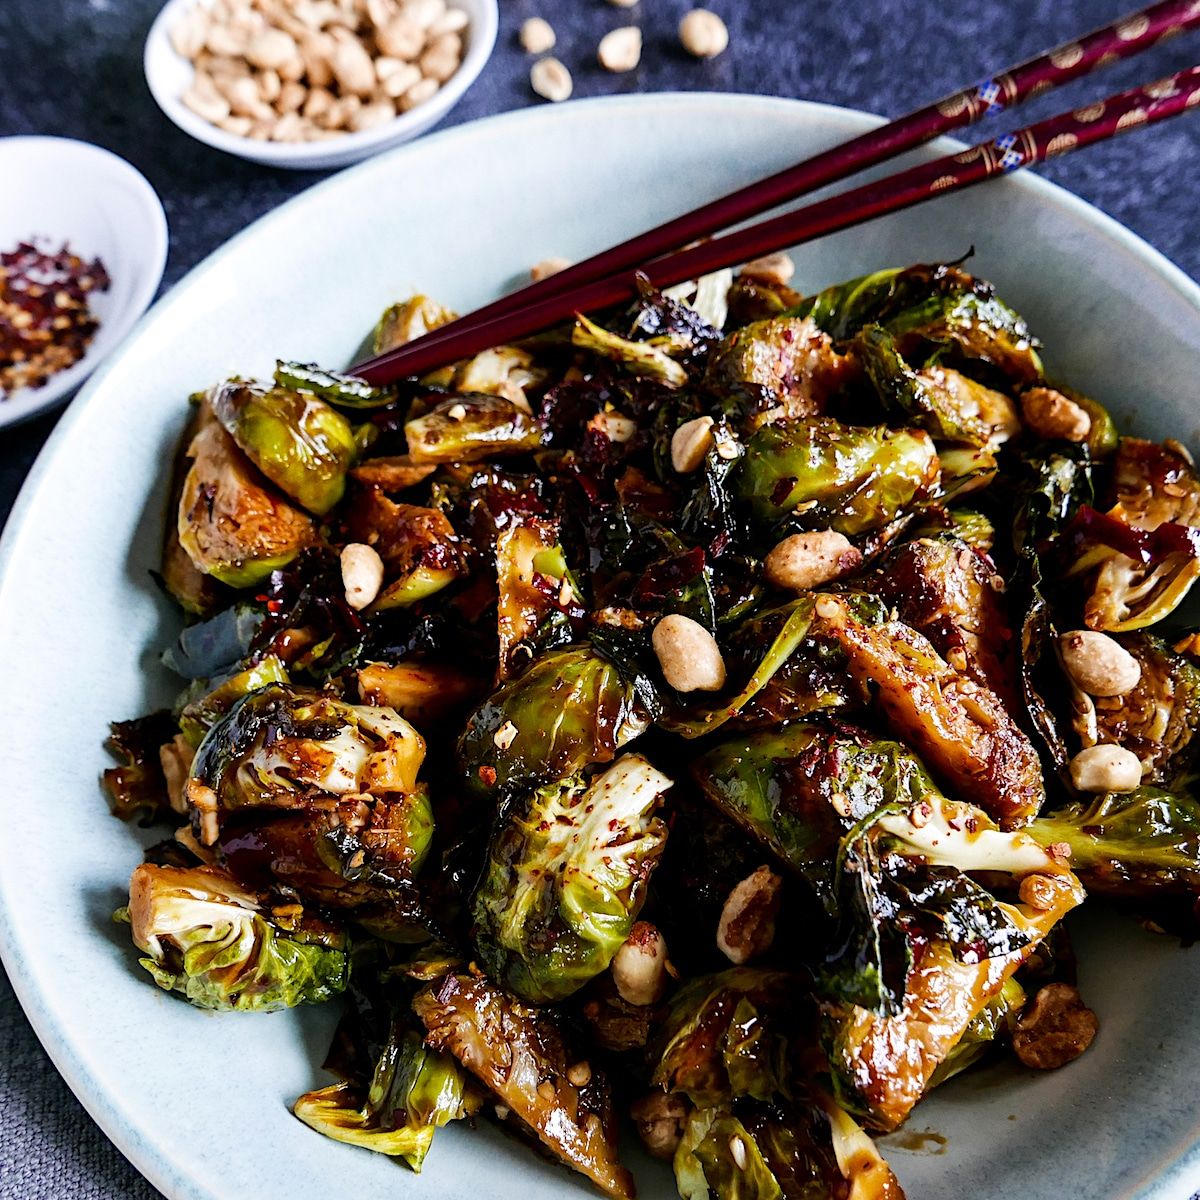 kung pao brussels sprouts garnished with peanuts and chopsticks in a white bowl with cup of peanuts in background